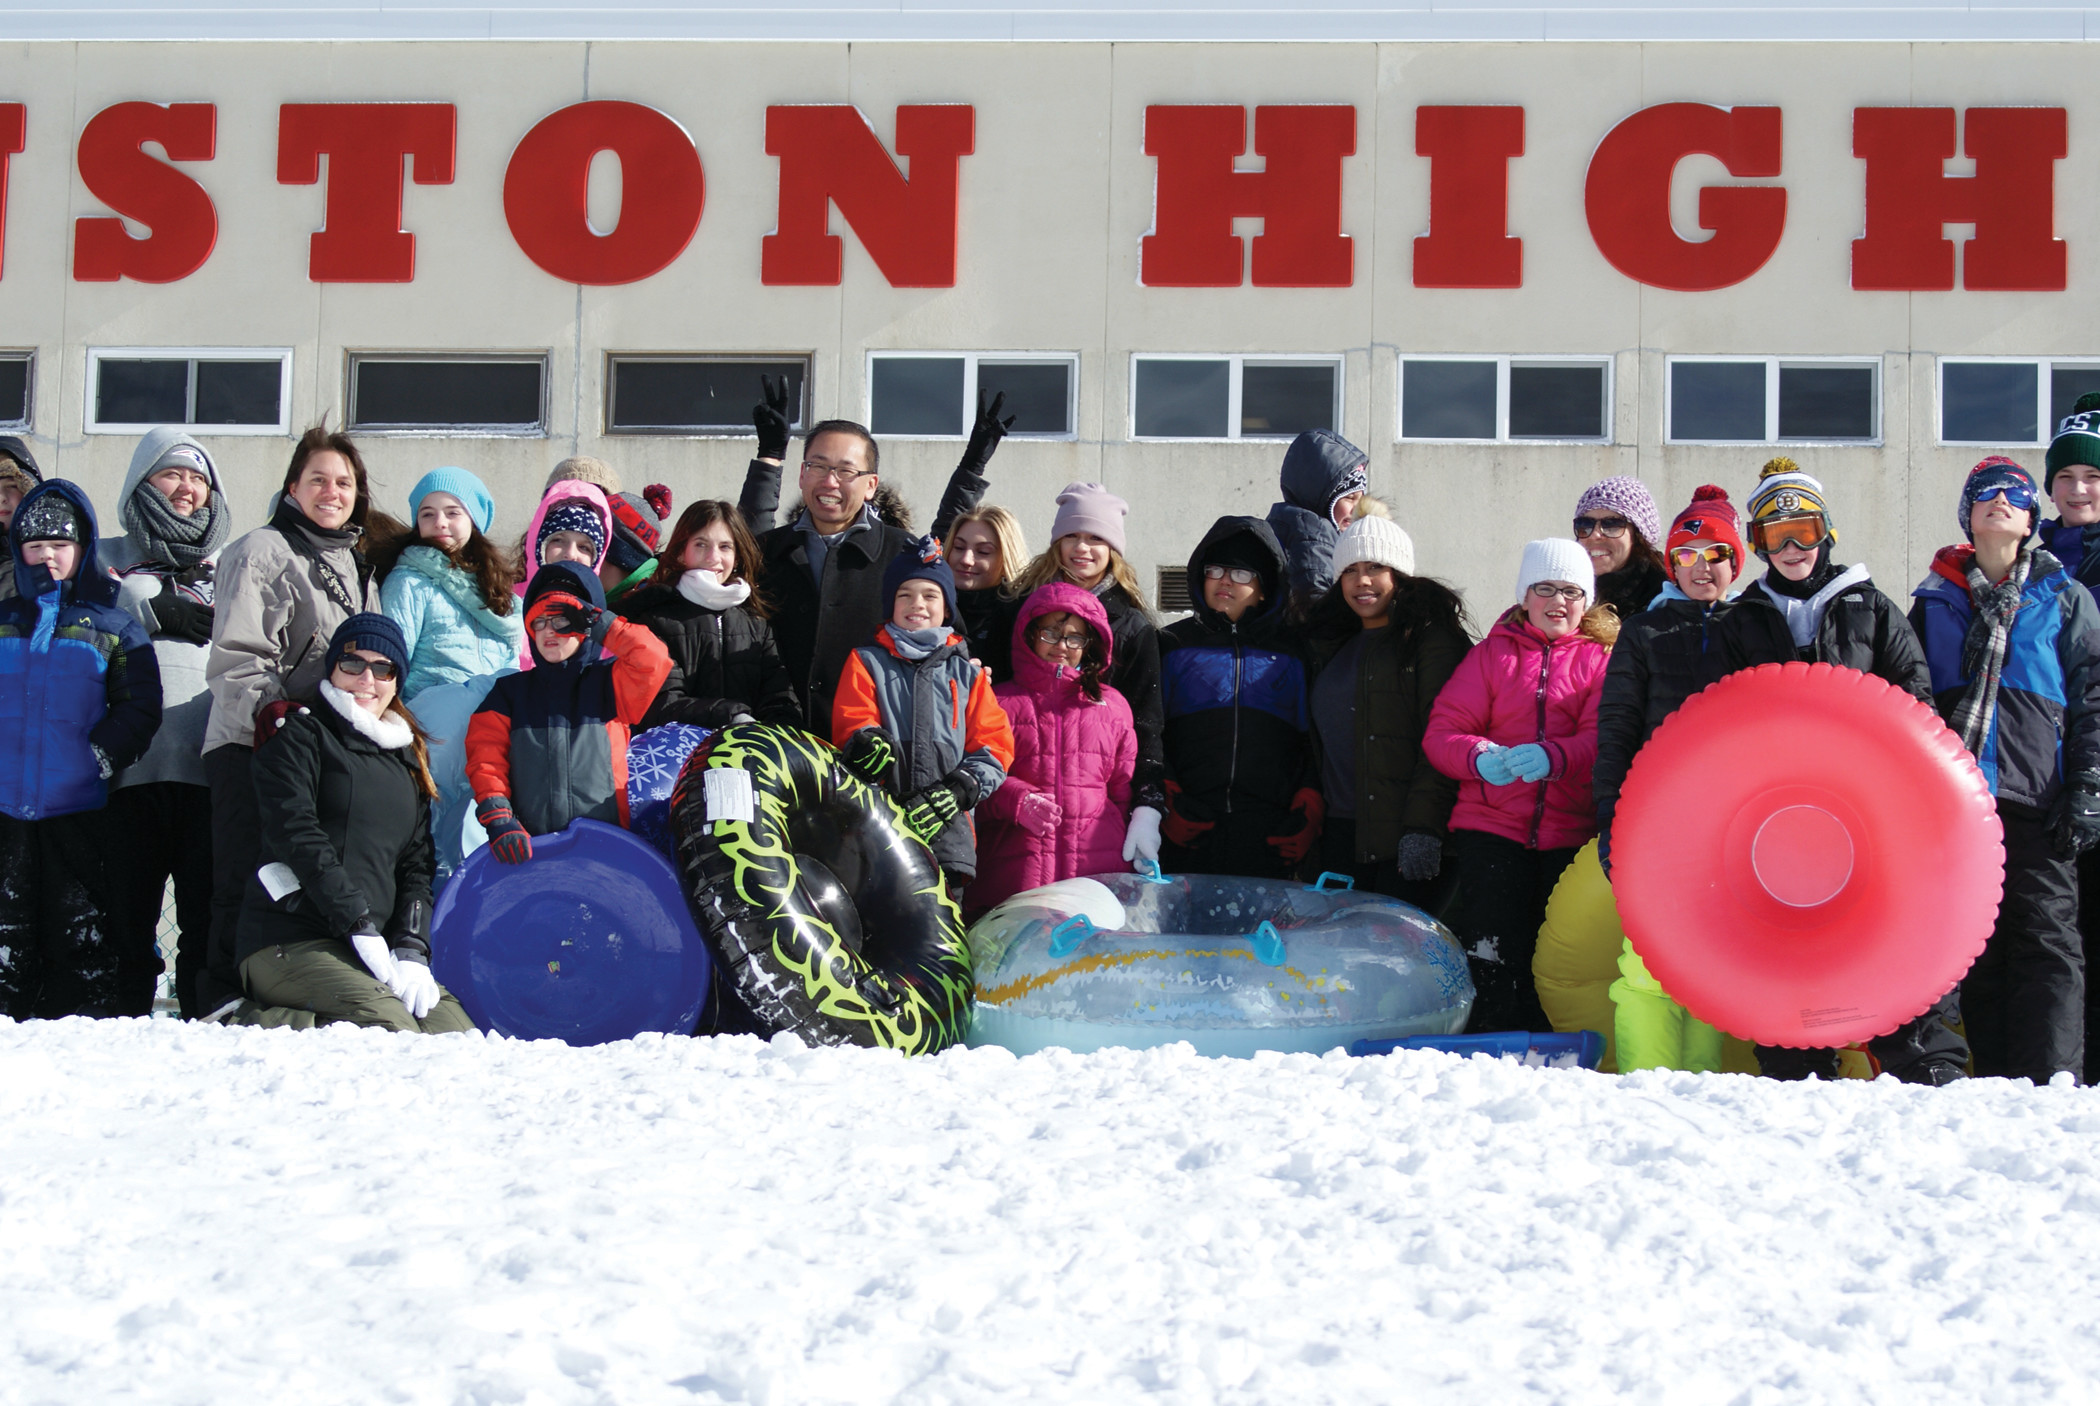 A SURPRISE VISITOR: Just as the BASICS Sled-a-Thon was about to begin, Mayor Allan Fung attended to cheer on the sledders and to meet both parents and students.